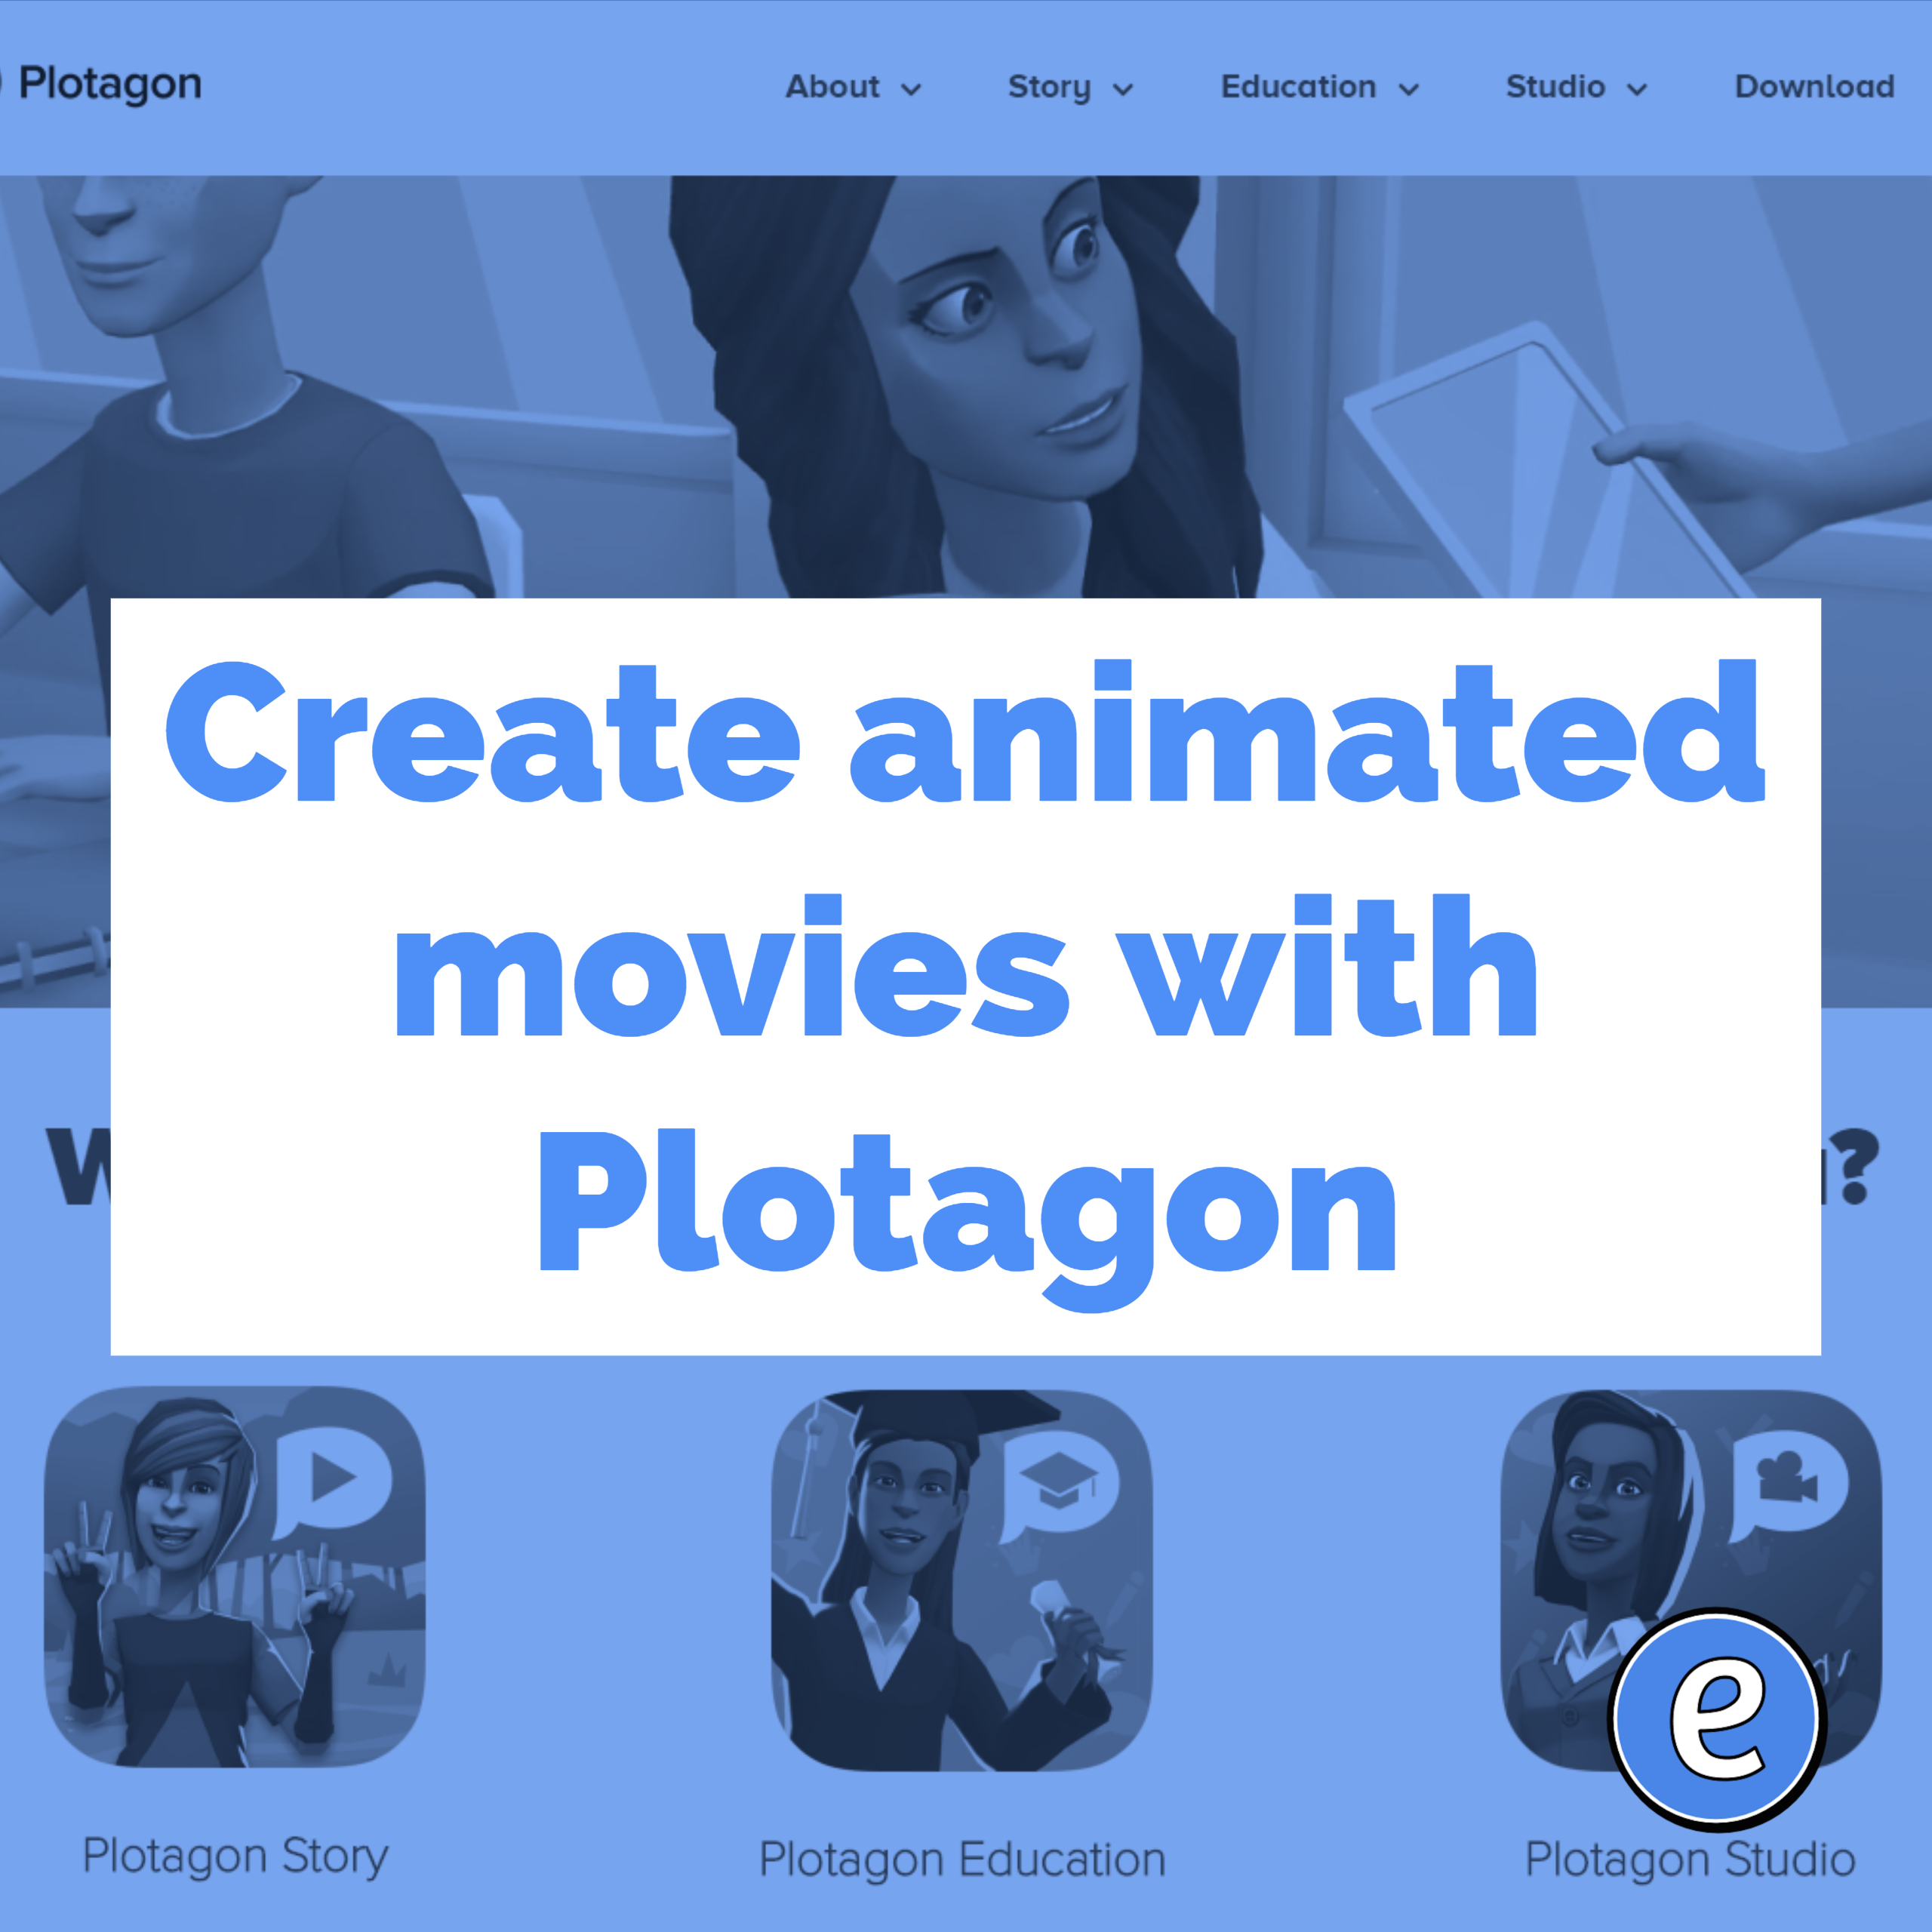 Create animated movies with Plotagon